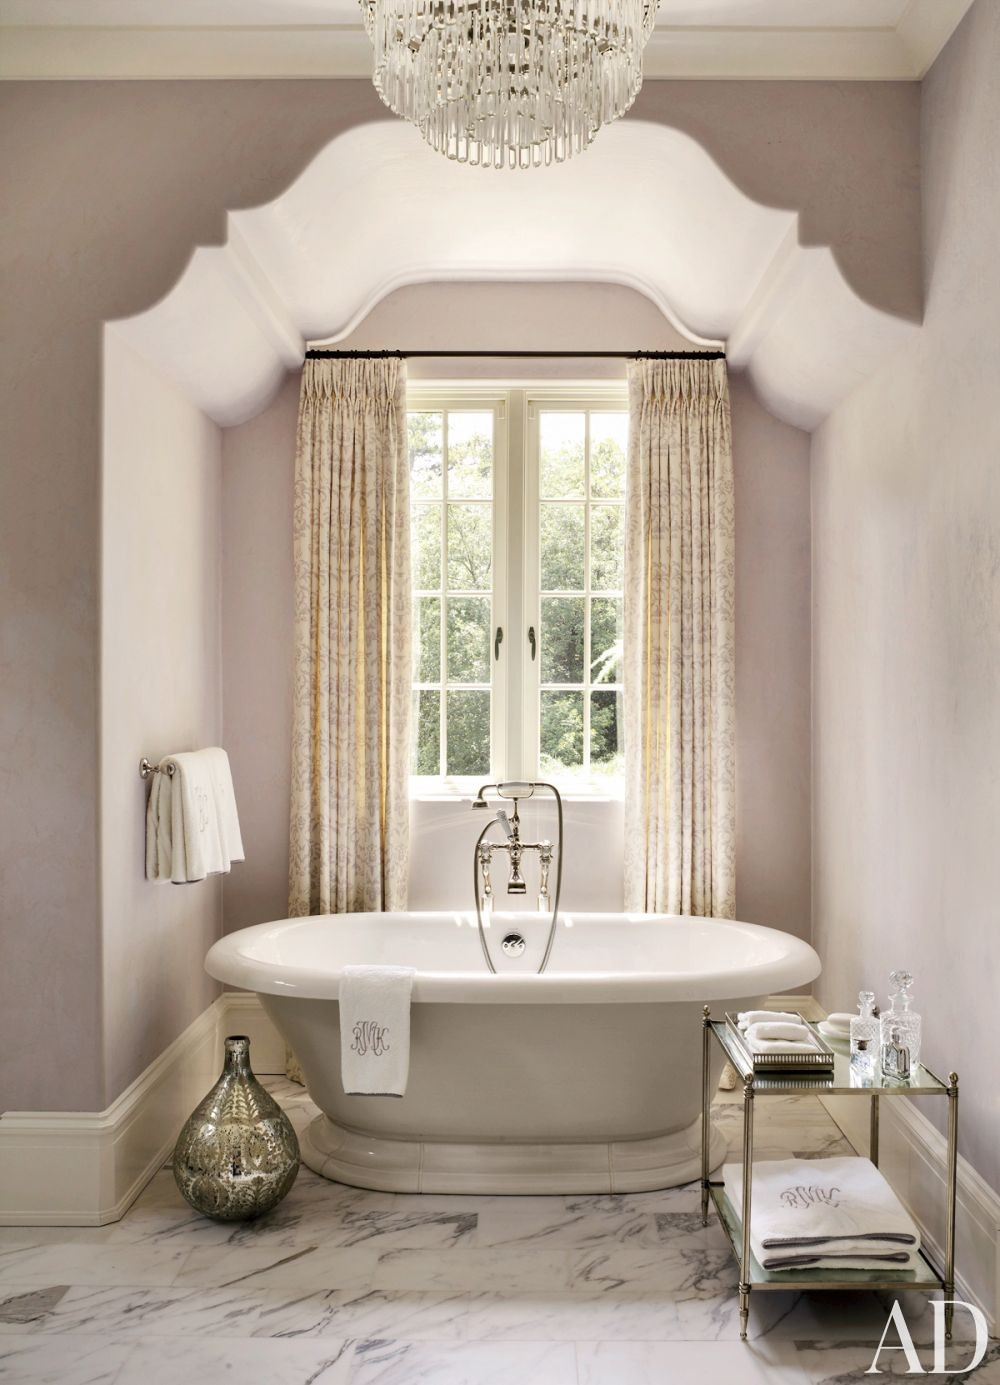 mauve bathroom light purple violet girly feminine ceiling design traditional bathtub marble tiles ideas inspiration small shop room ideas yellow curtains window victorian tub fittings